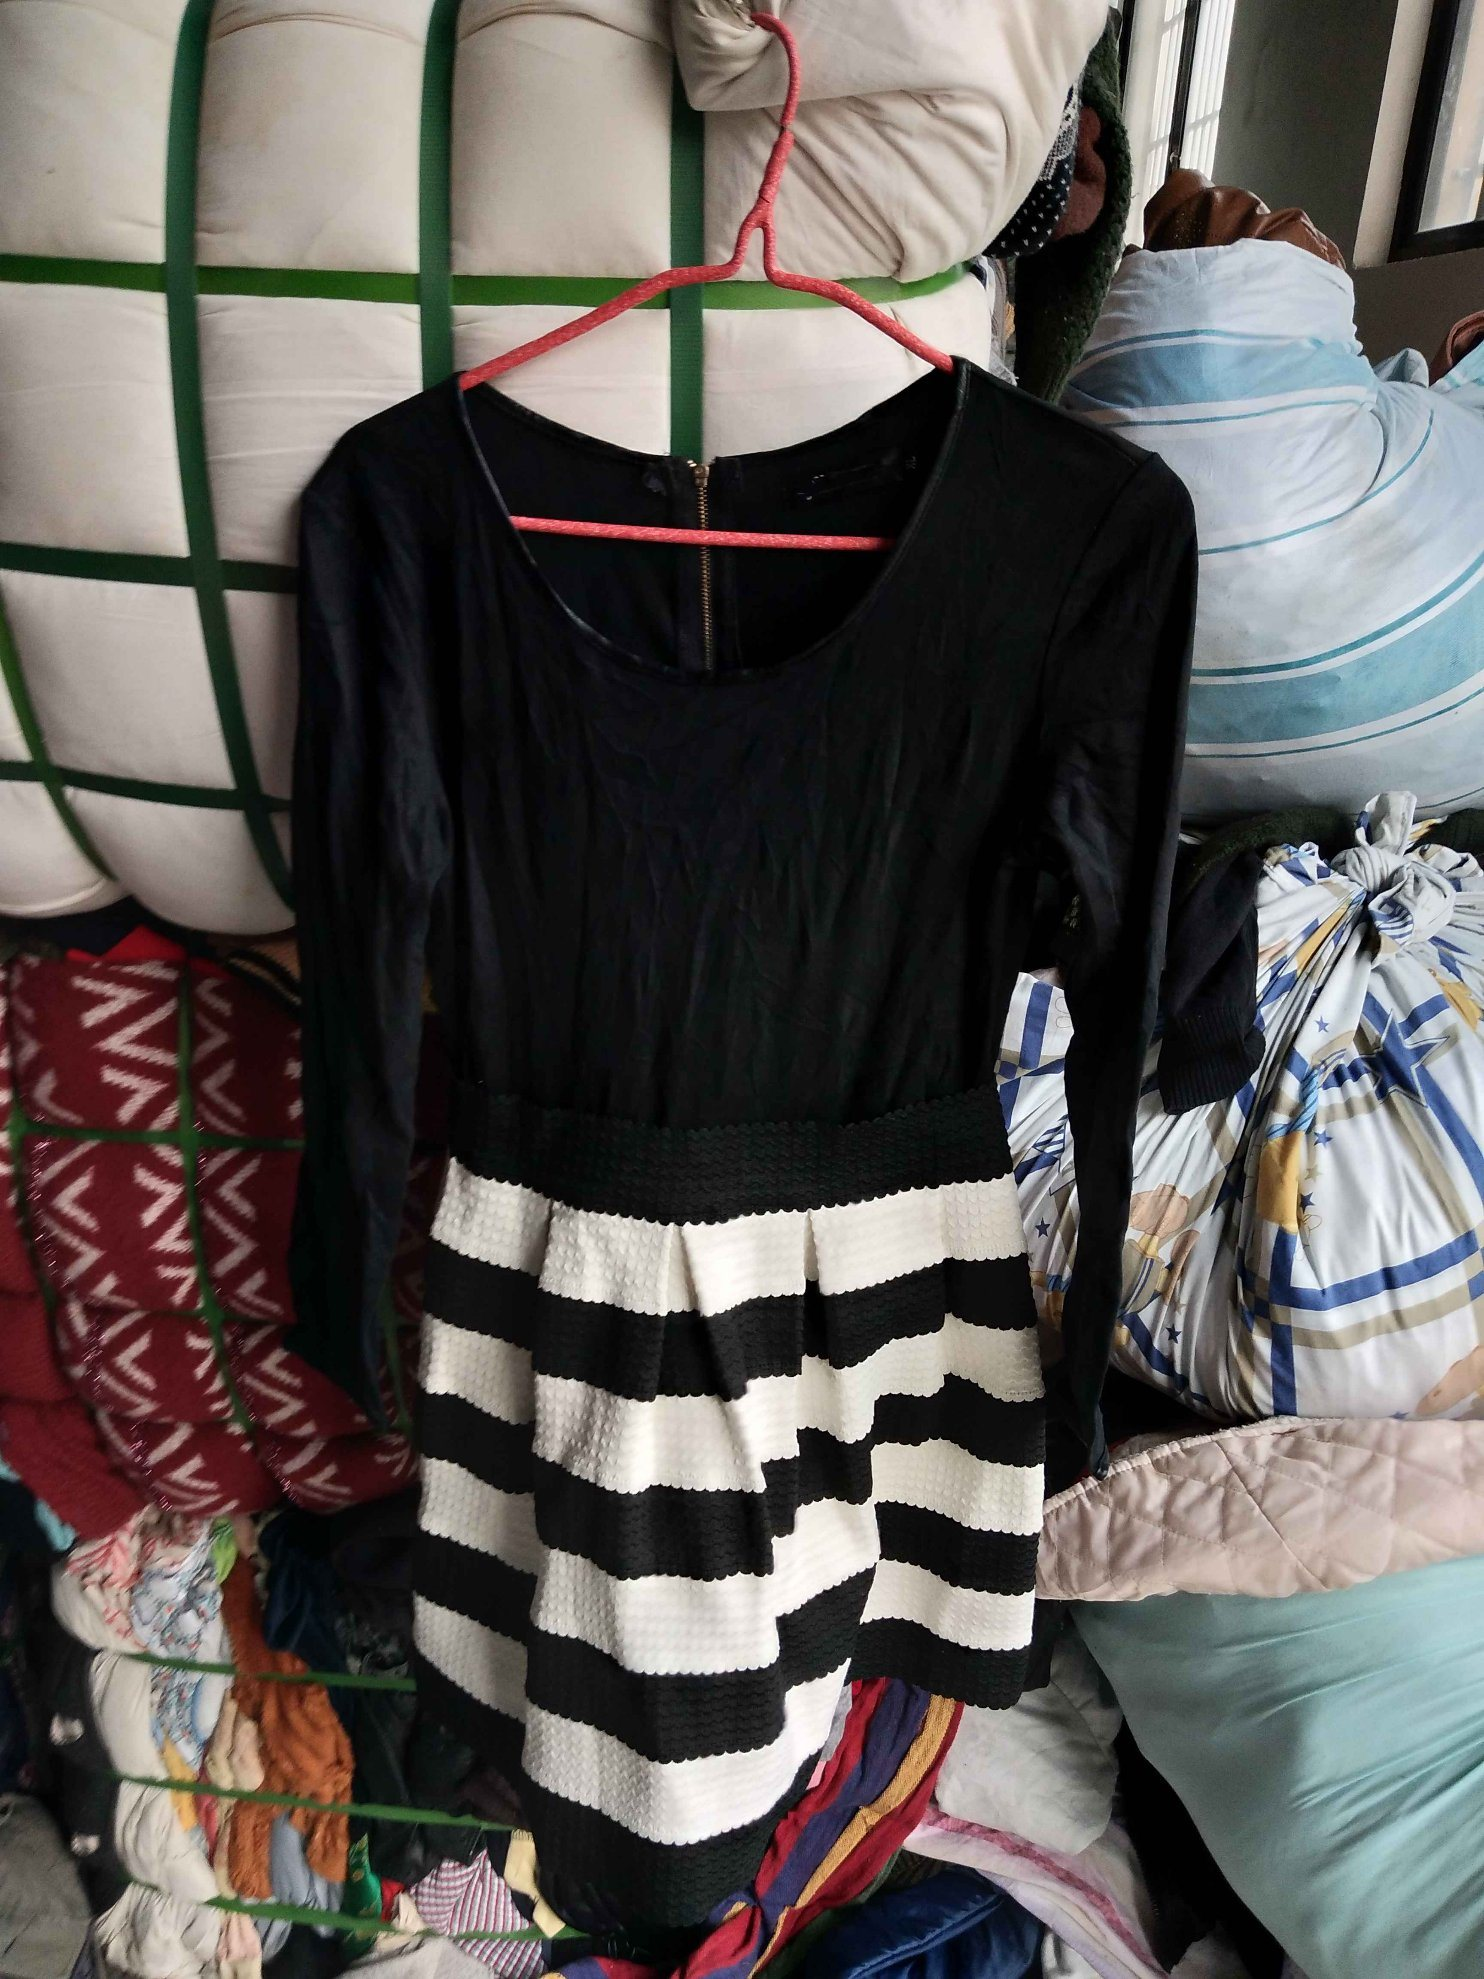 f840da22a China Top Sale Secondhand Clothes for African Market 2018 Photos ...